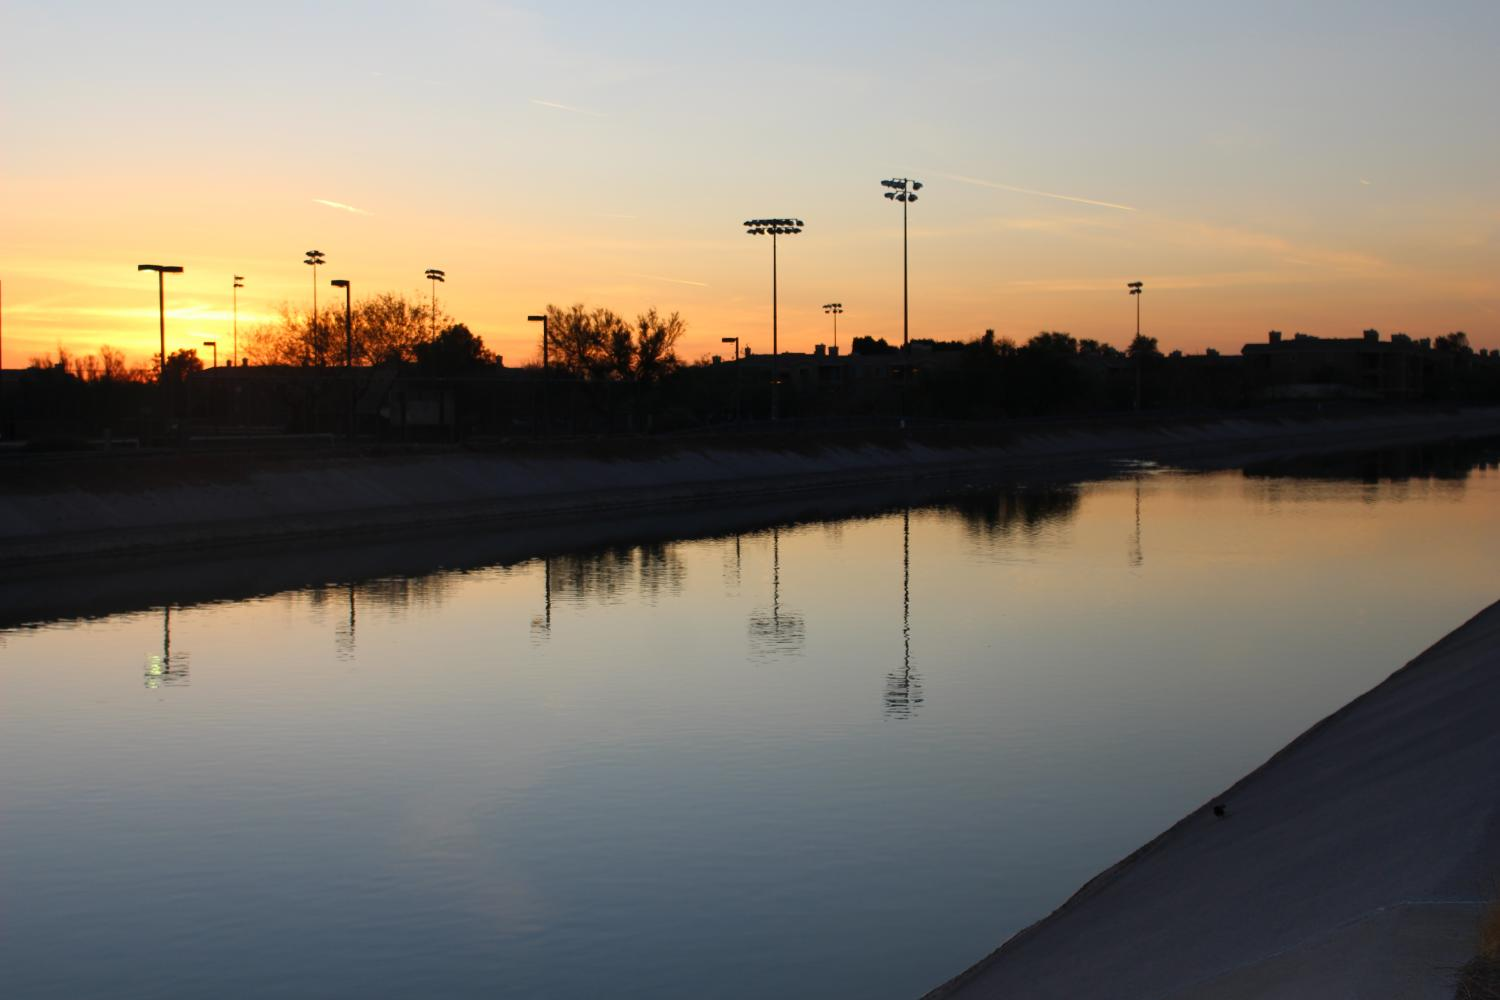 A Central Arizona Project canal in Scottsdale.